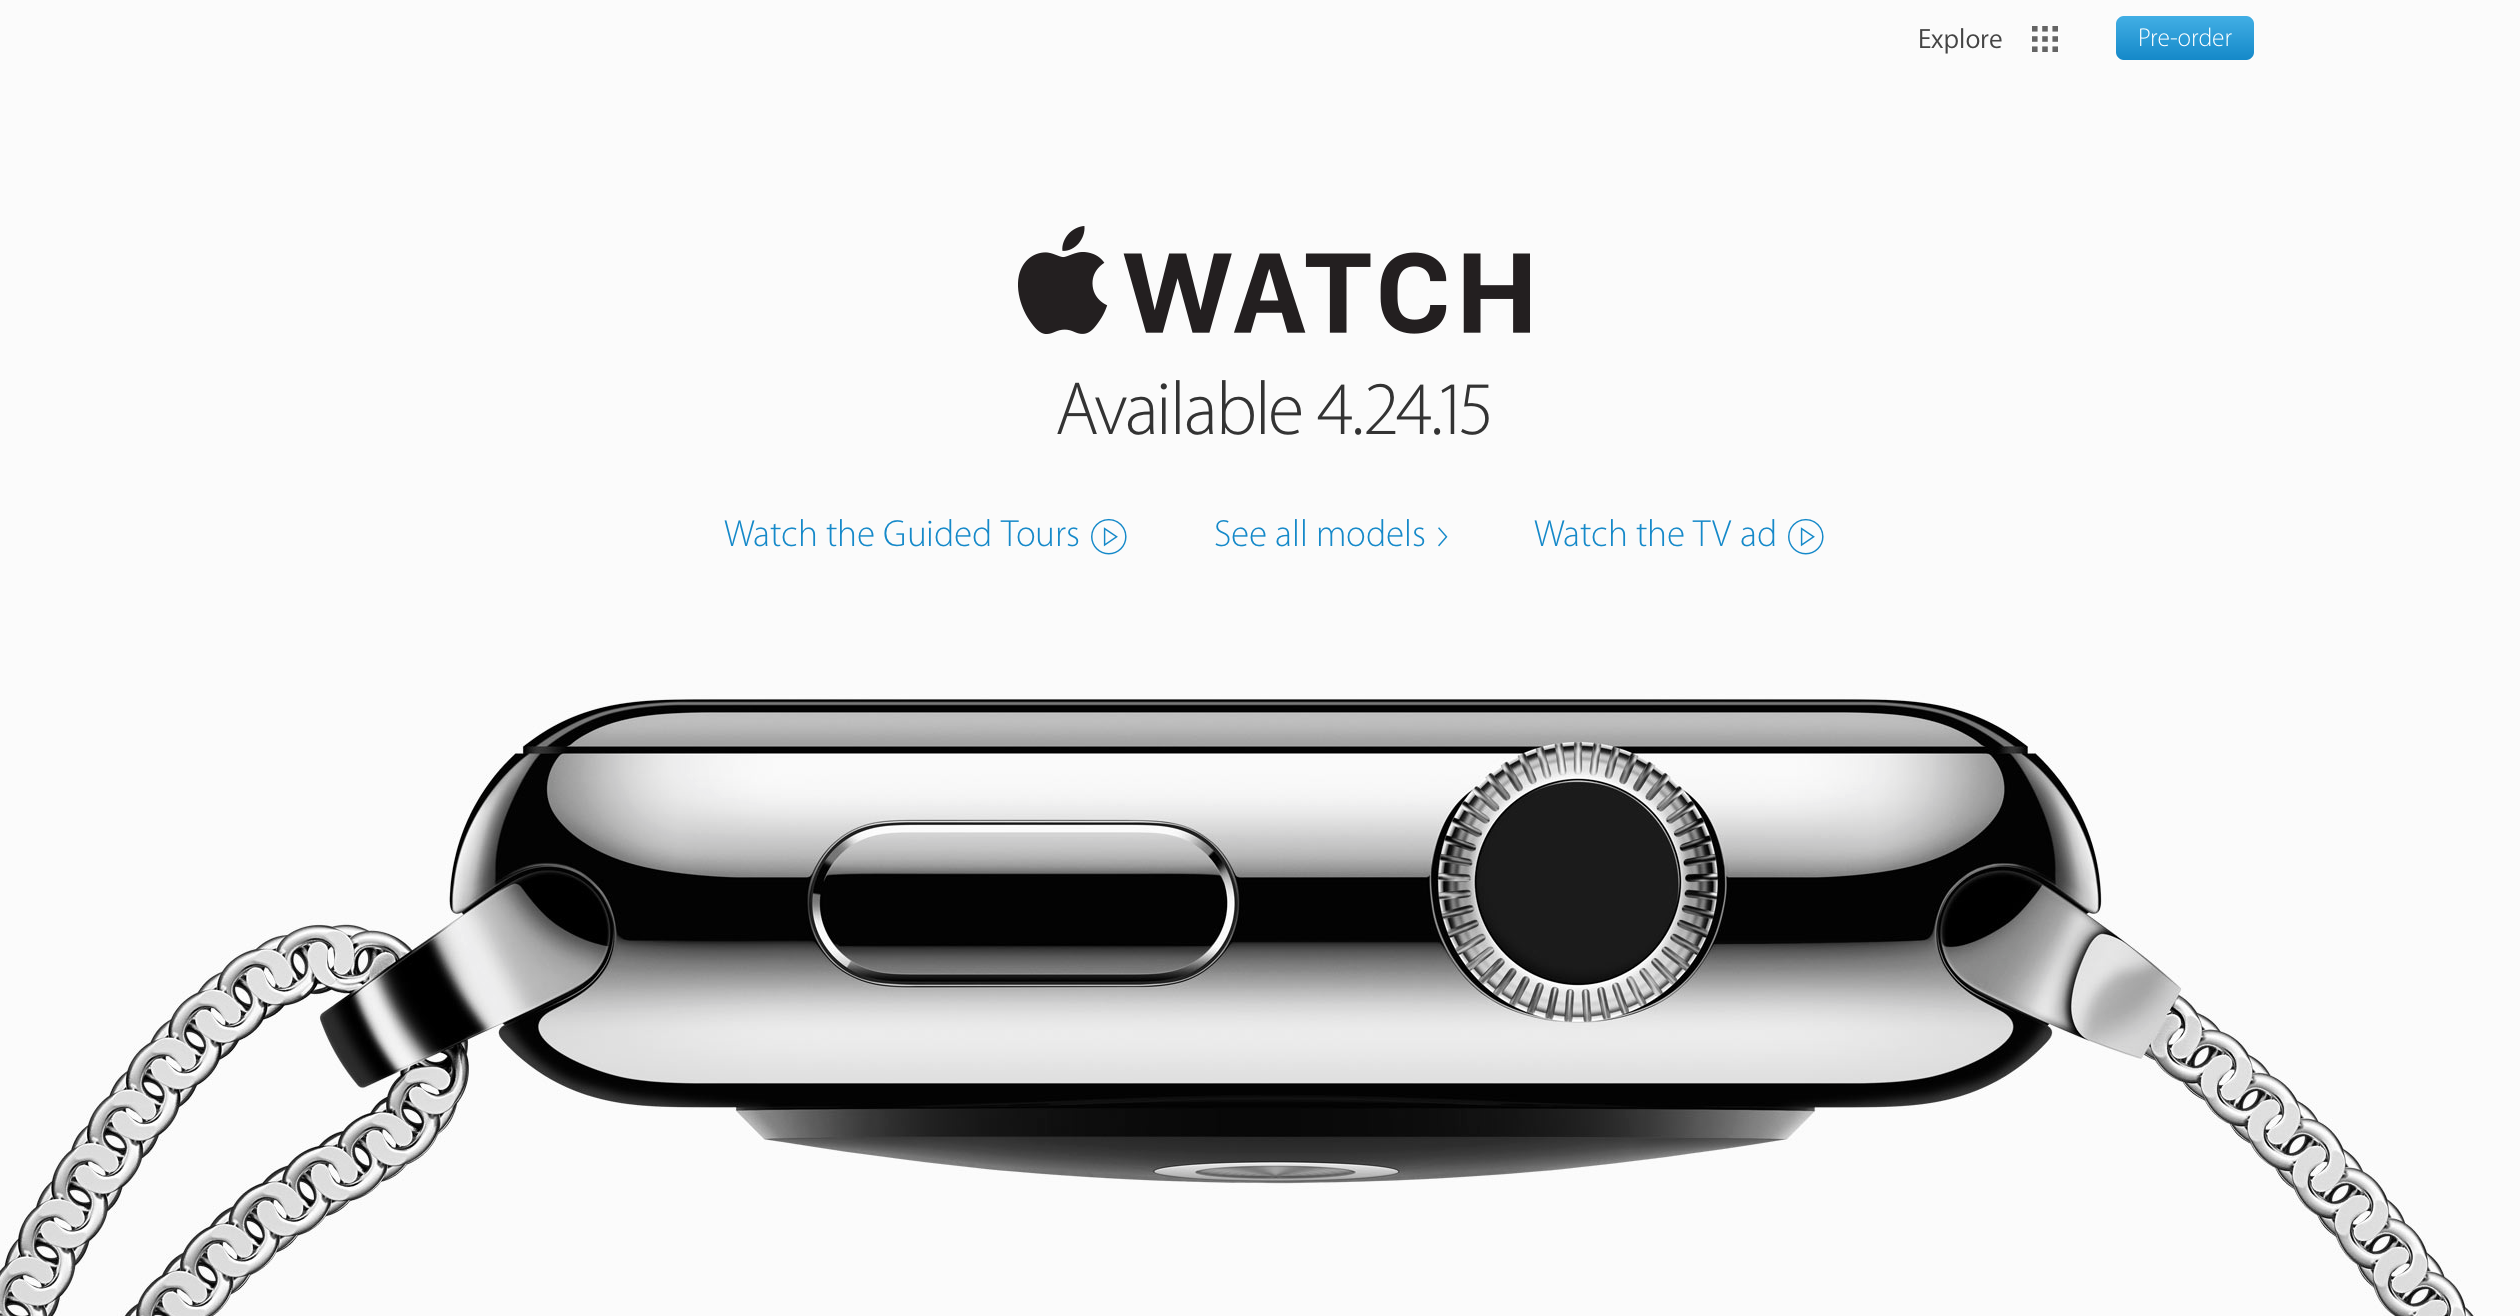 The Apple Watch site as it appeared until the evening of April 15th